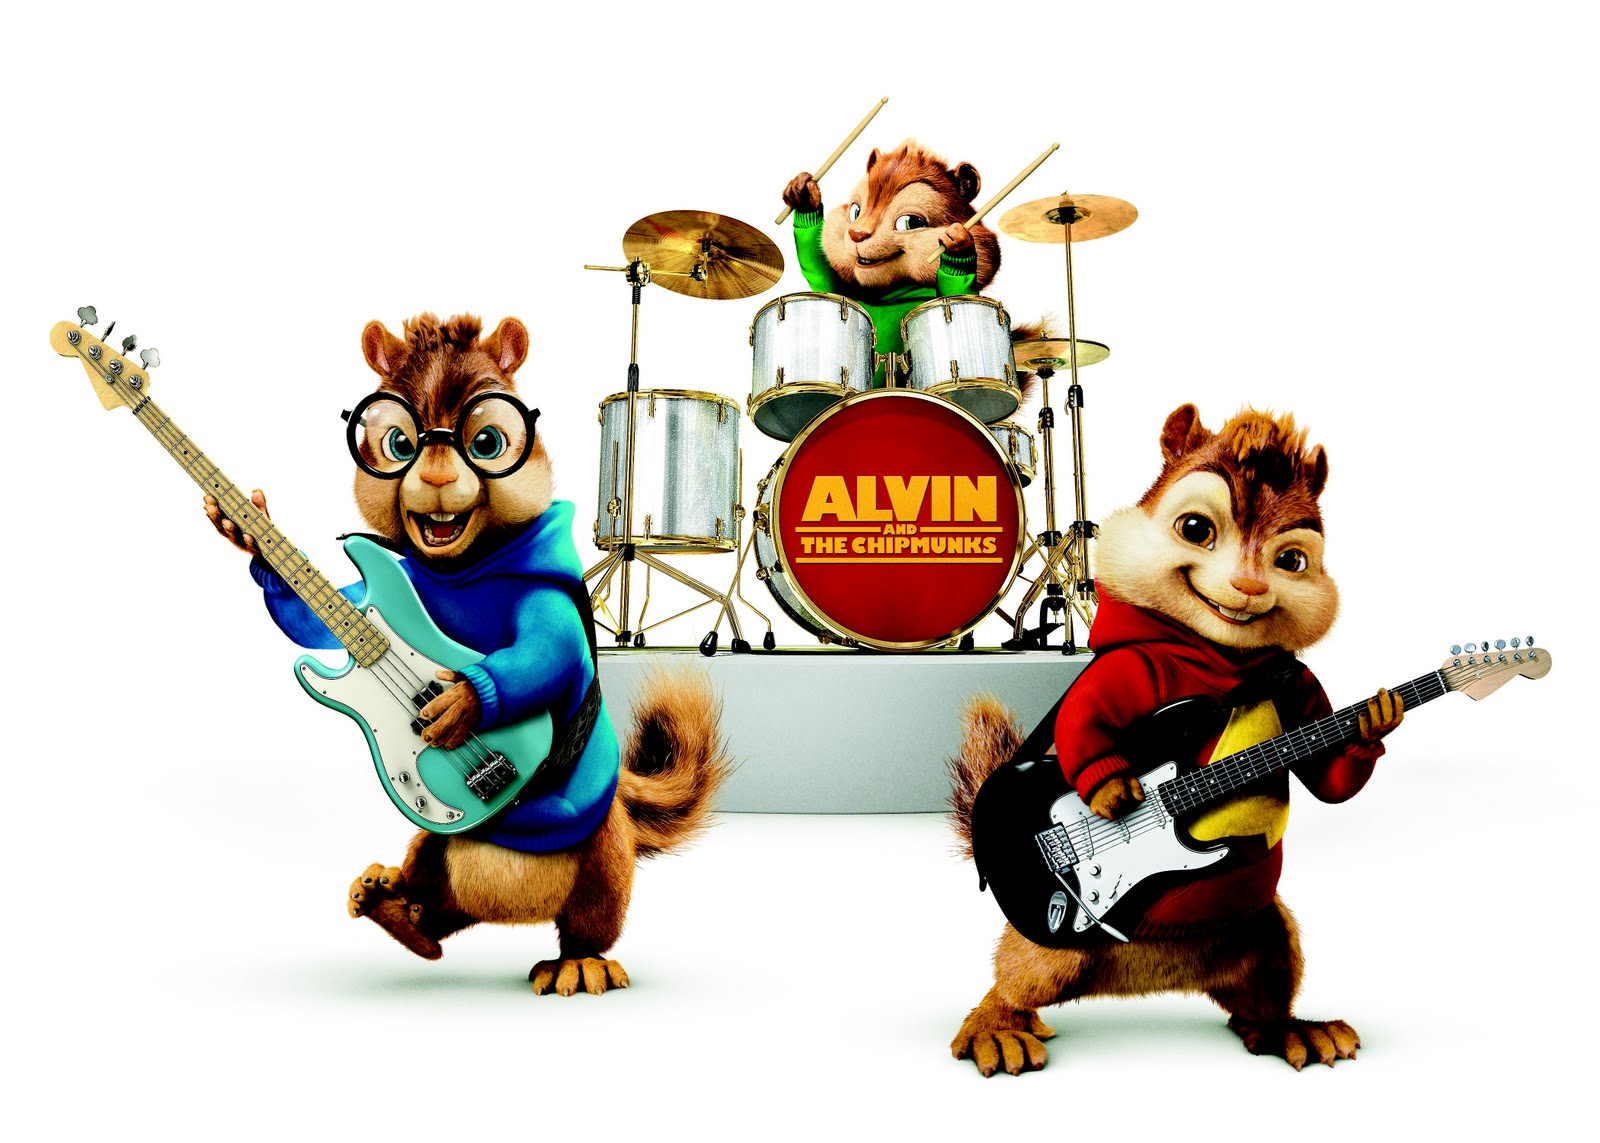 alvin and the chipmunks - photo #21